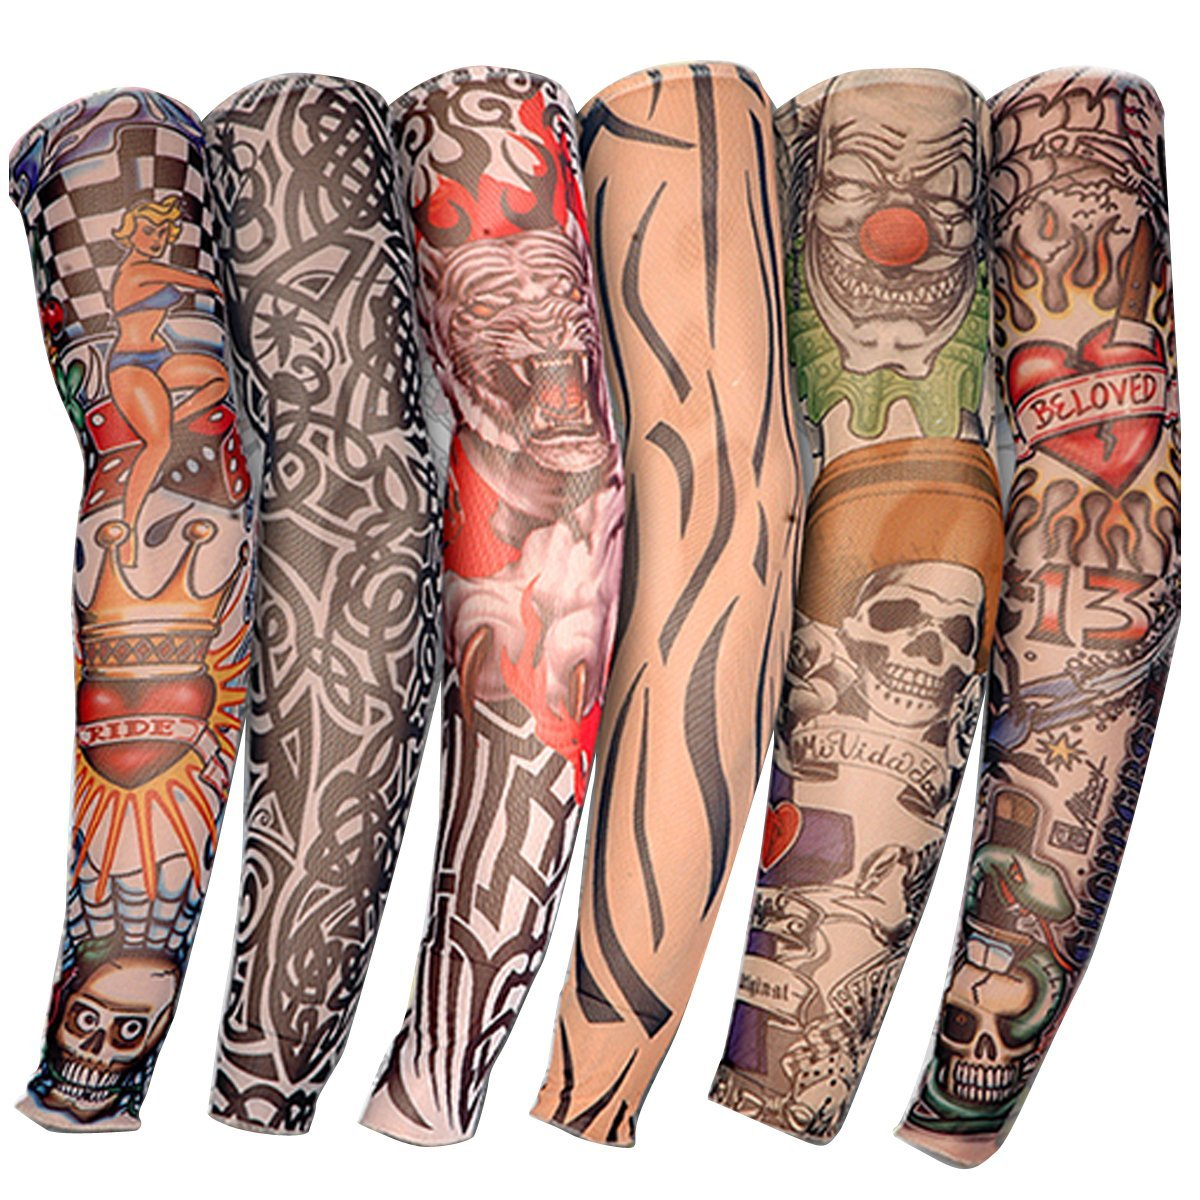 6pcs Stylish Breathable Tattoo Arm Sleeves Sun Protection Fake